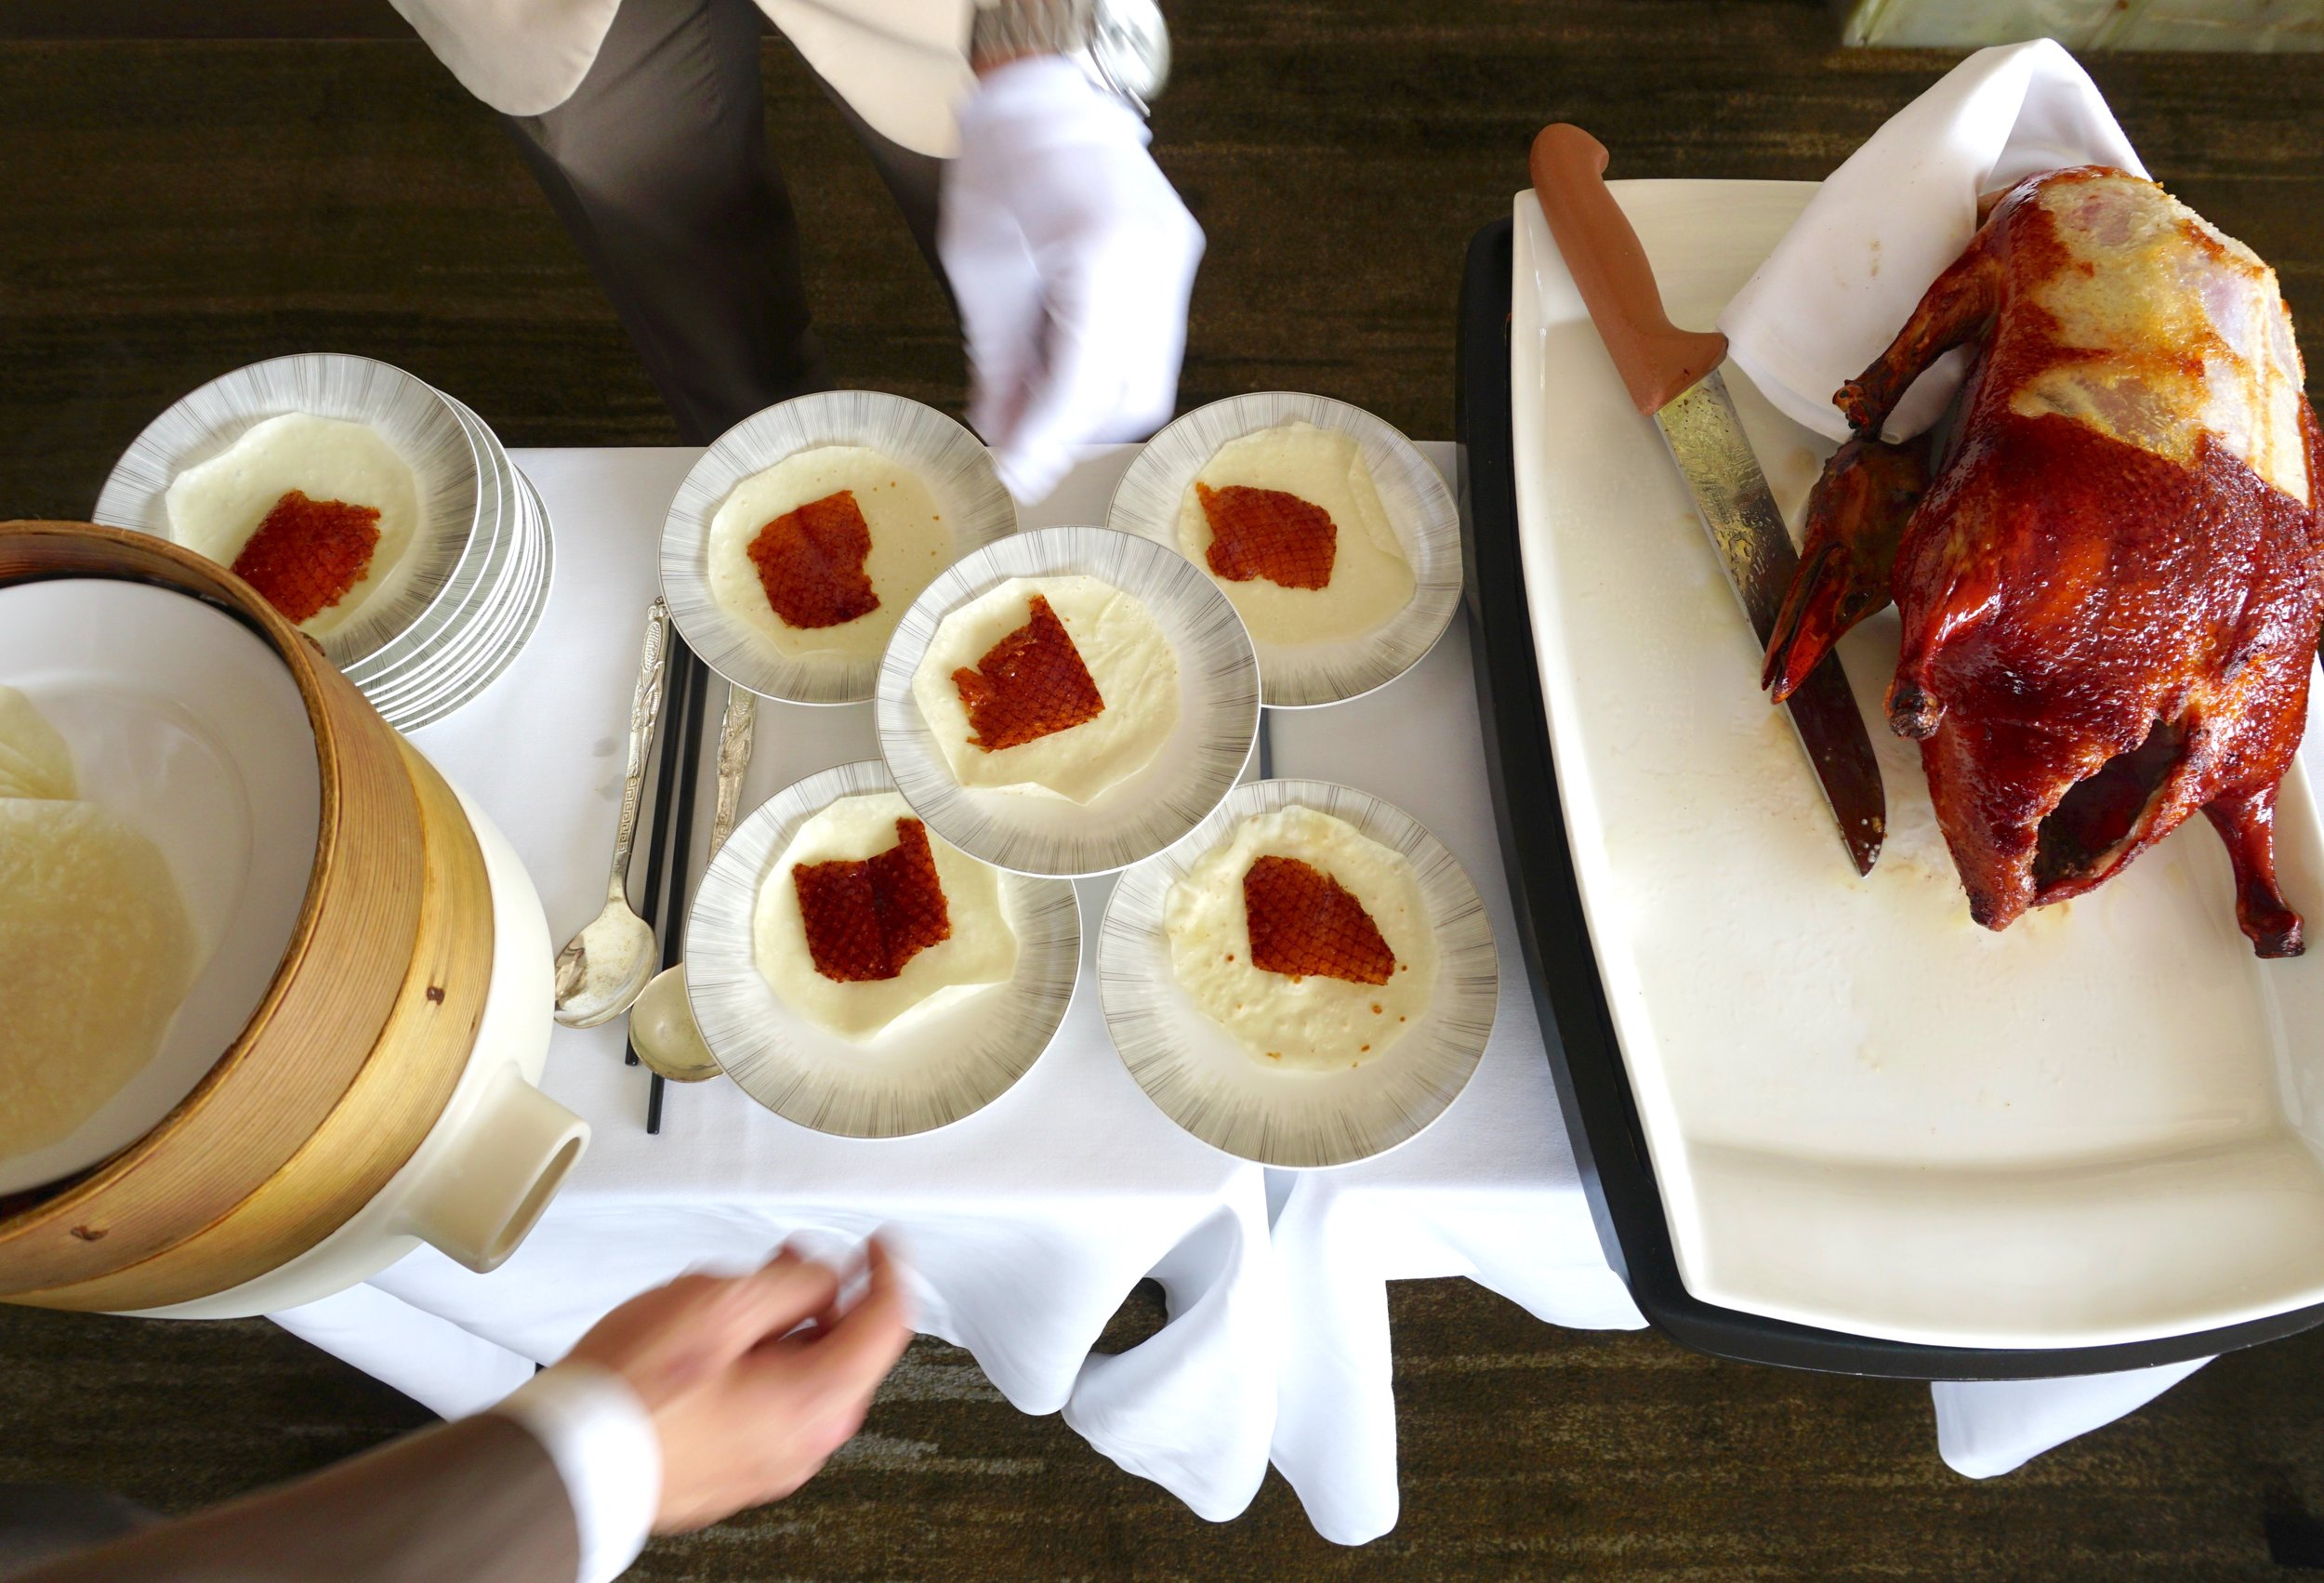 The  pièce de resistance : Peking duck, carved and served on a trolley, tableside.